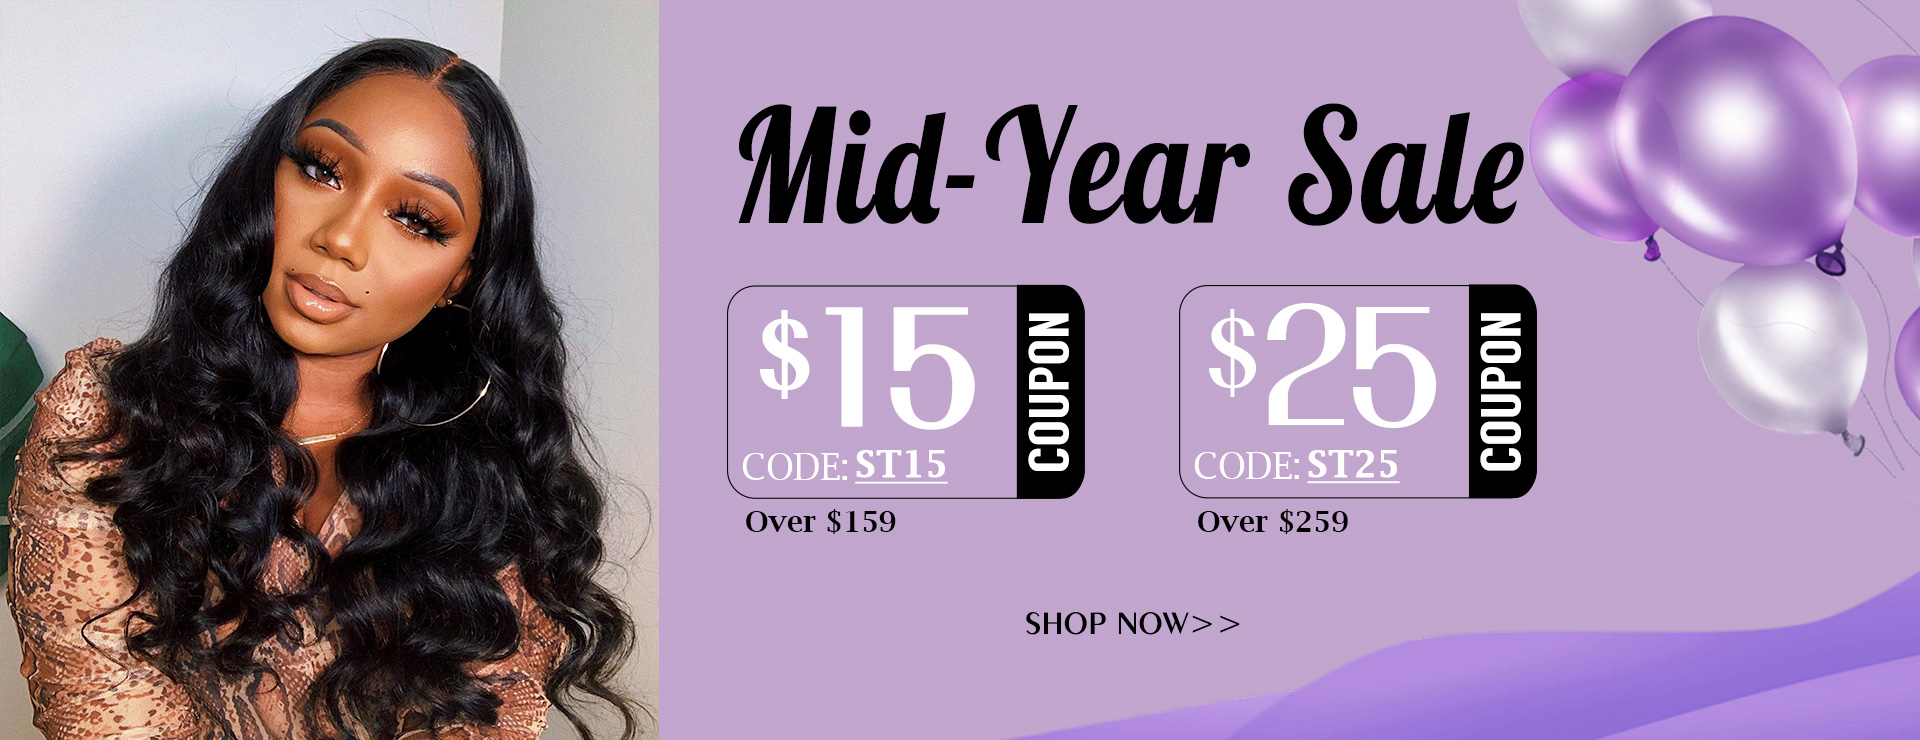 2021 mid year sale